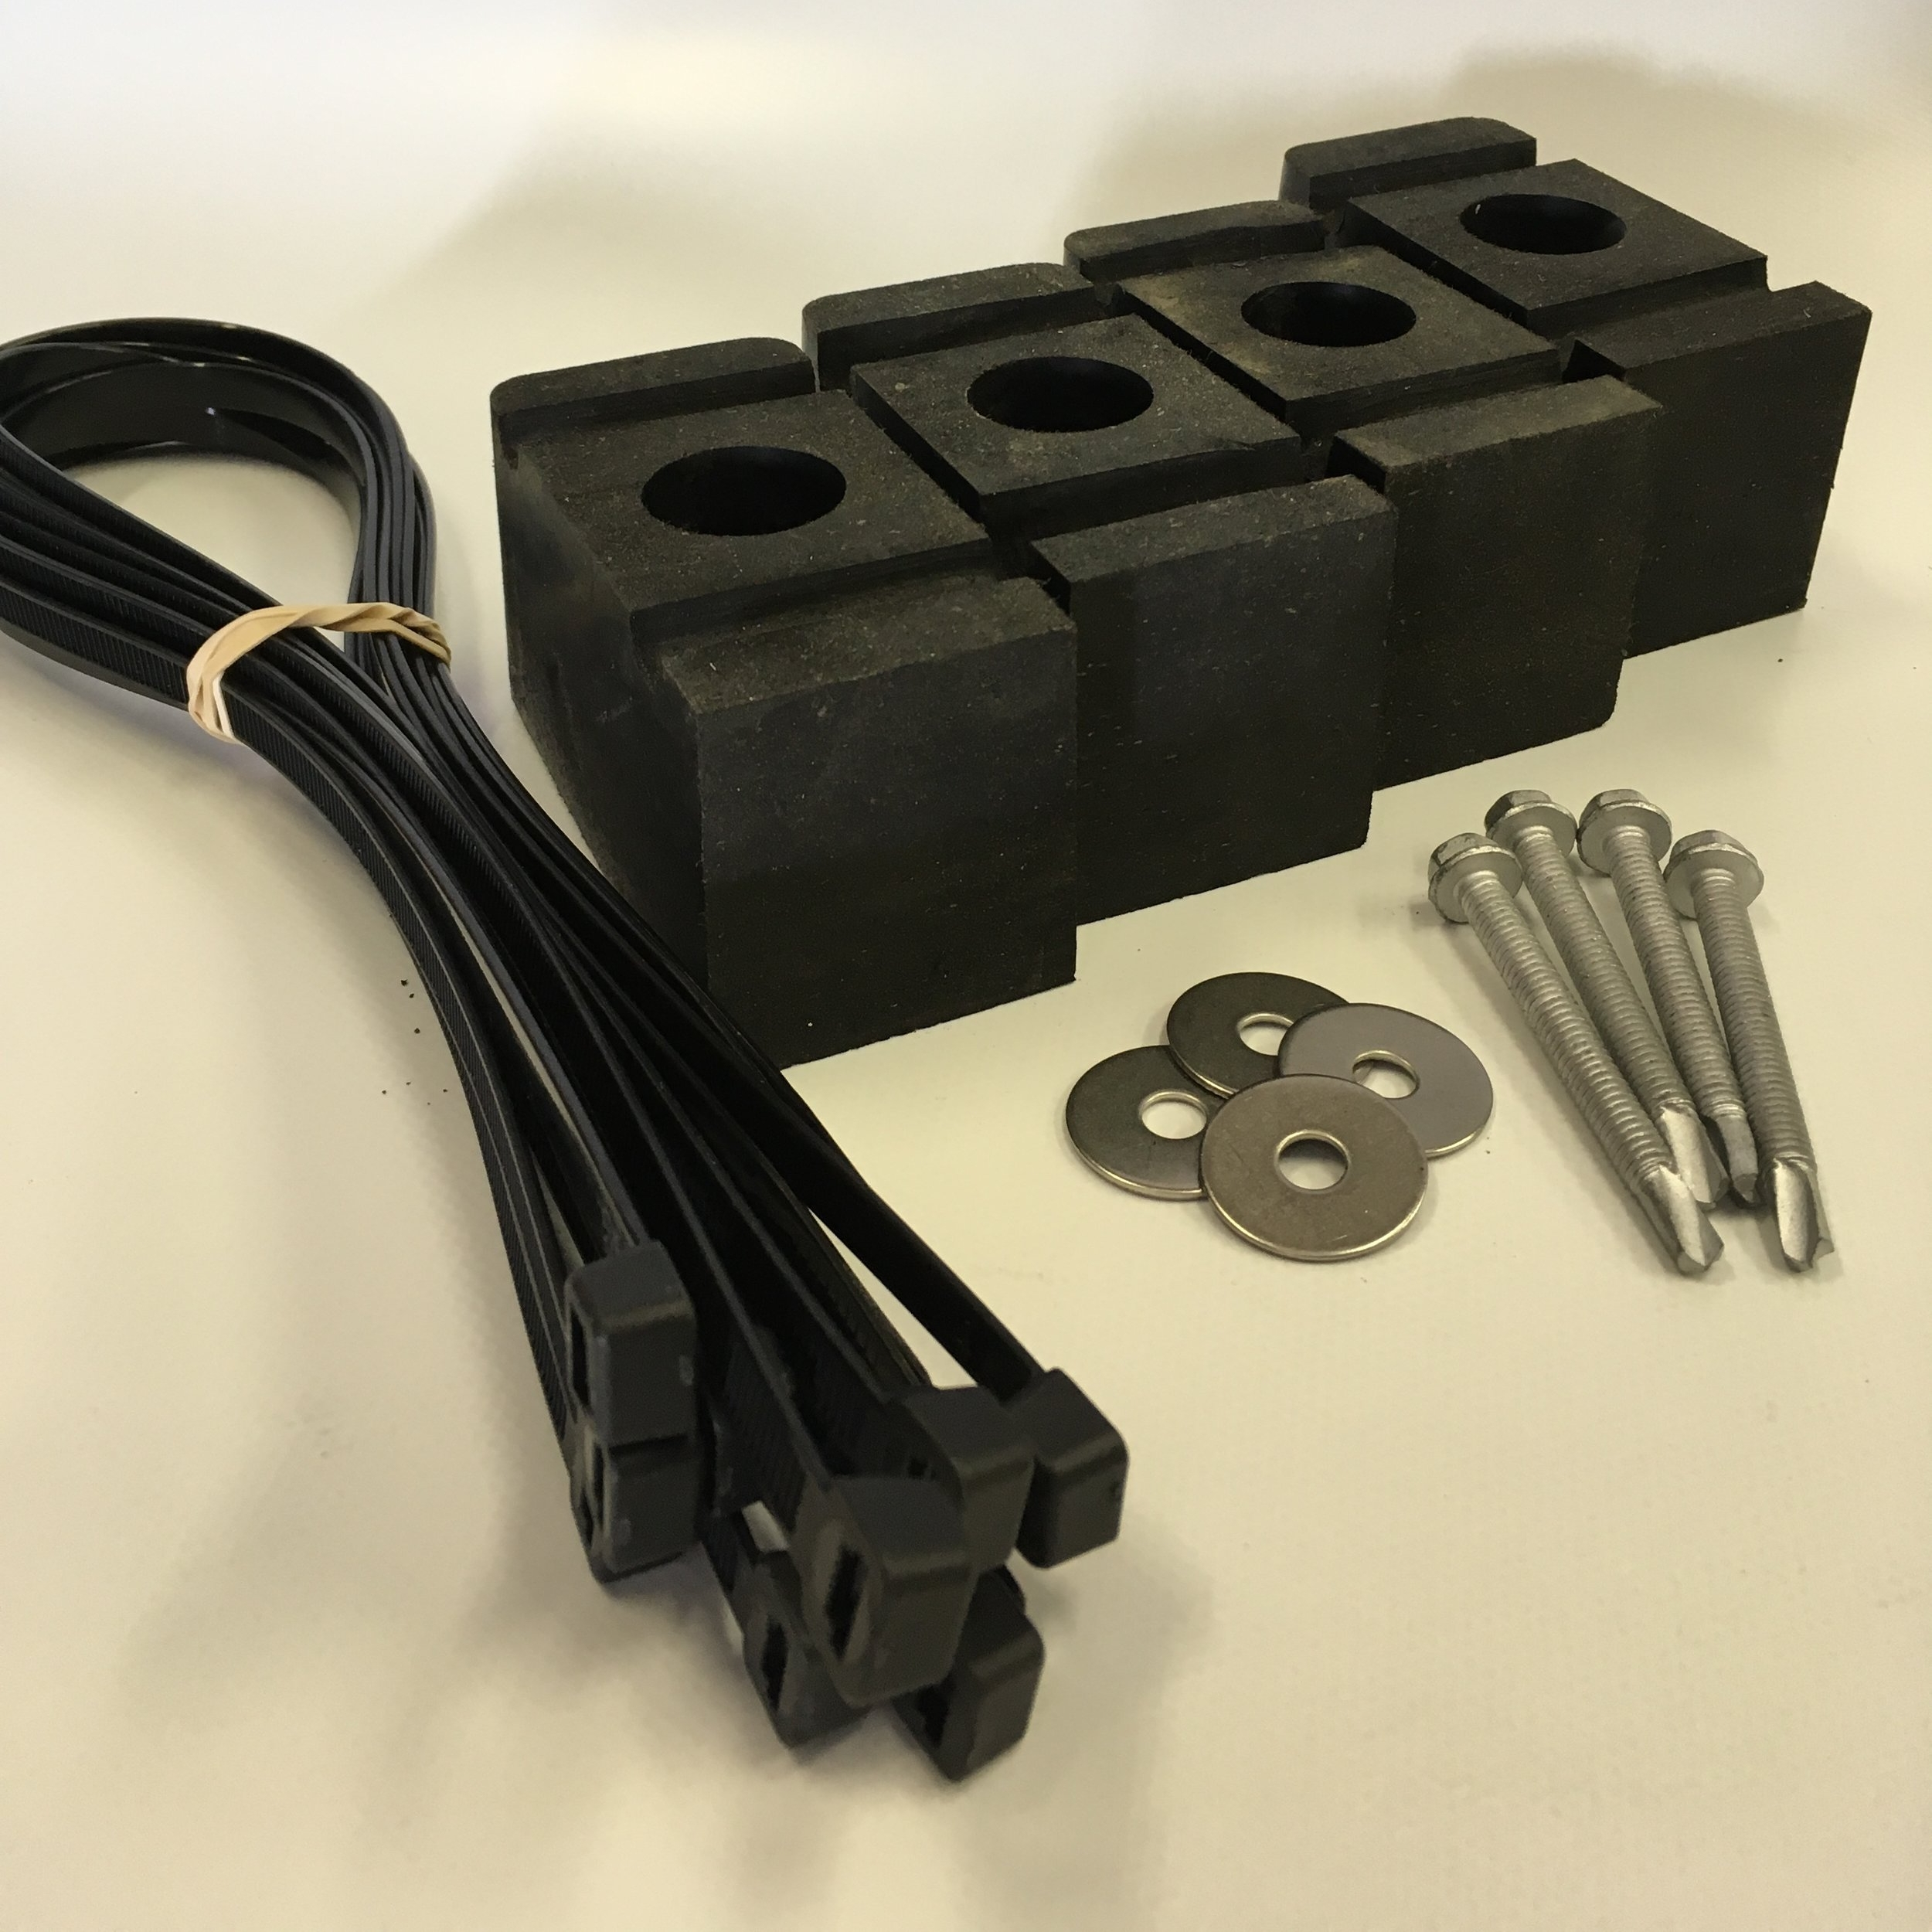 Rubber Stopping Blocks $58.50   Used for lift that bunk travels below cross beam. Floe/Beach King most common.